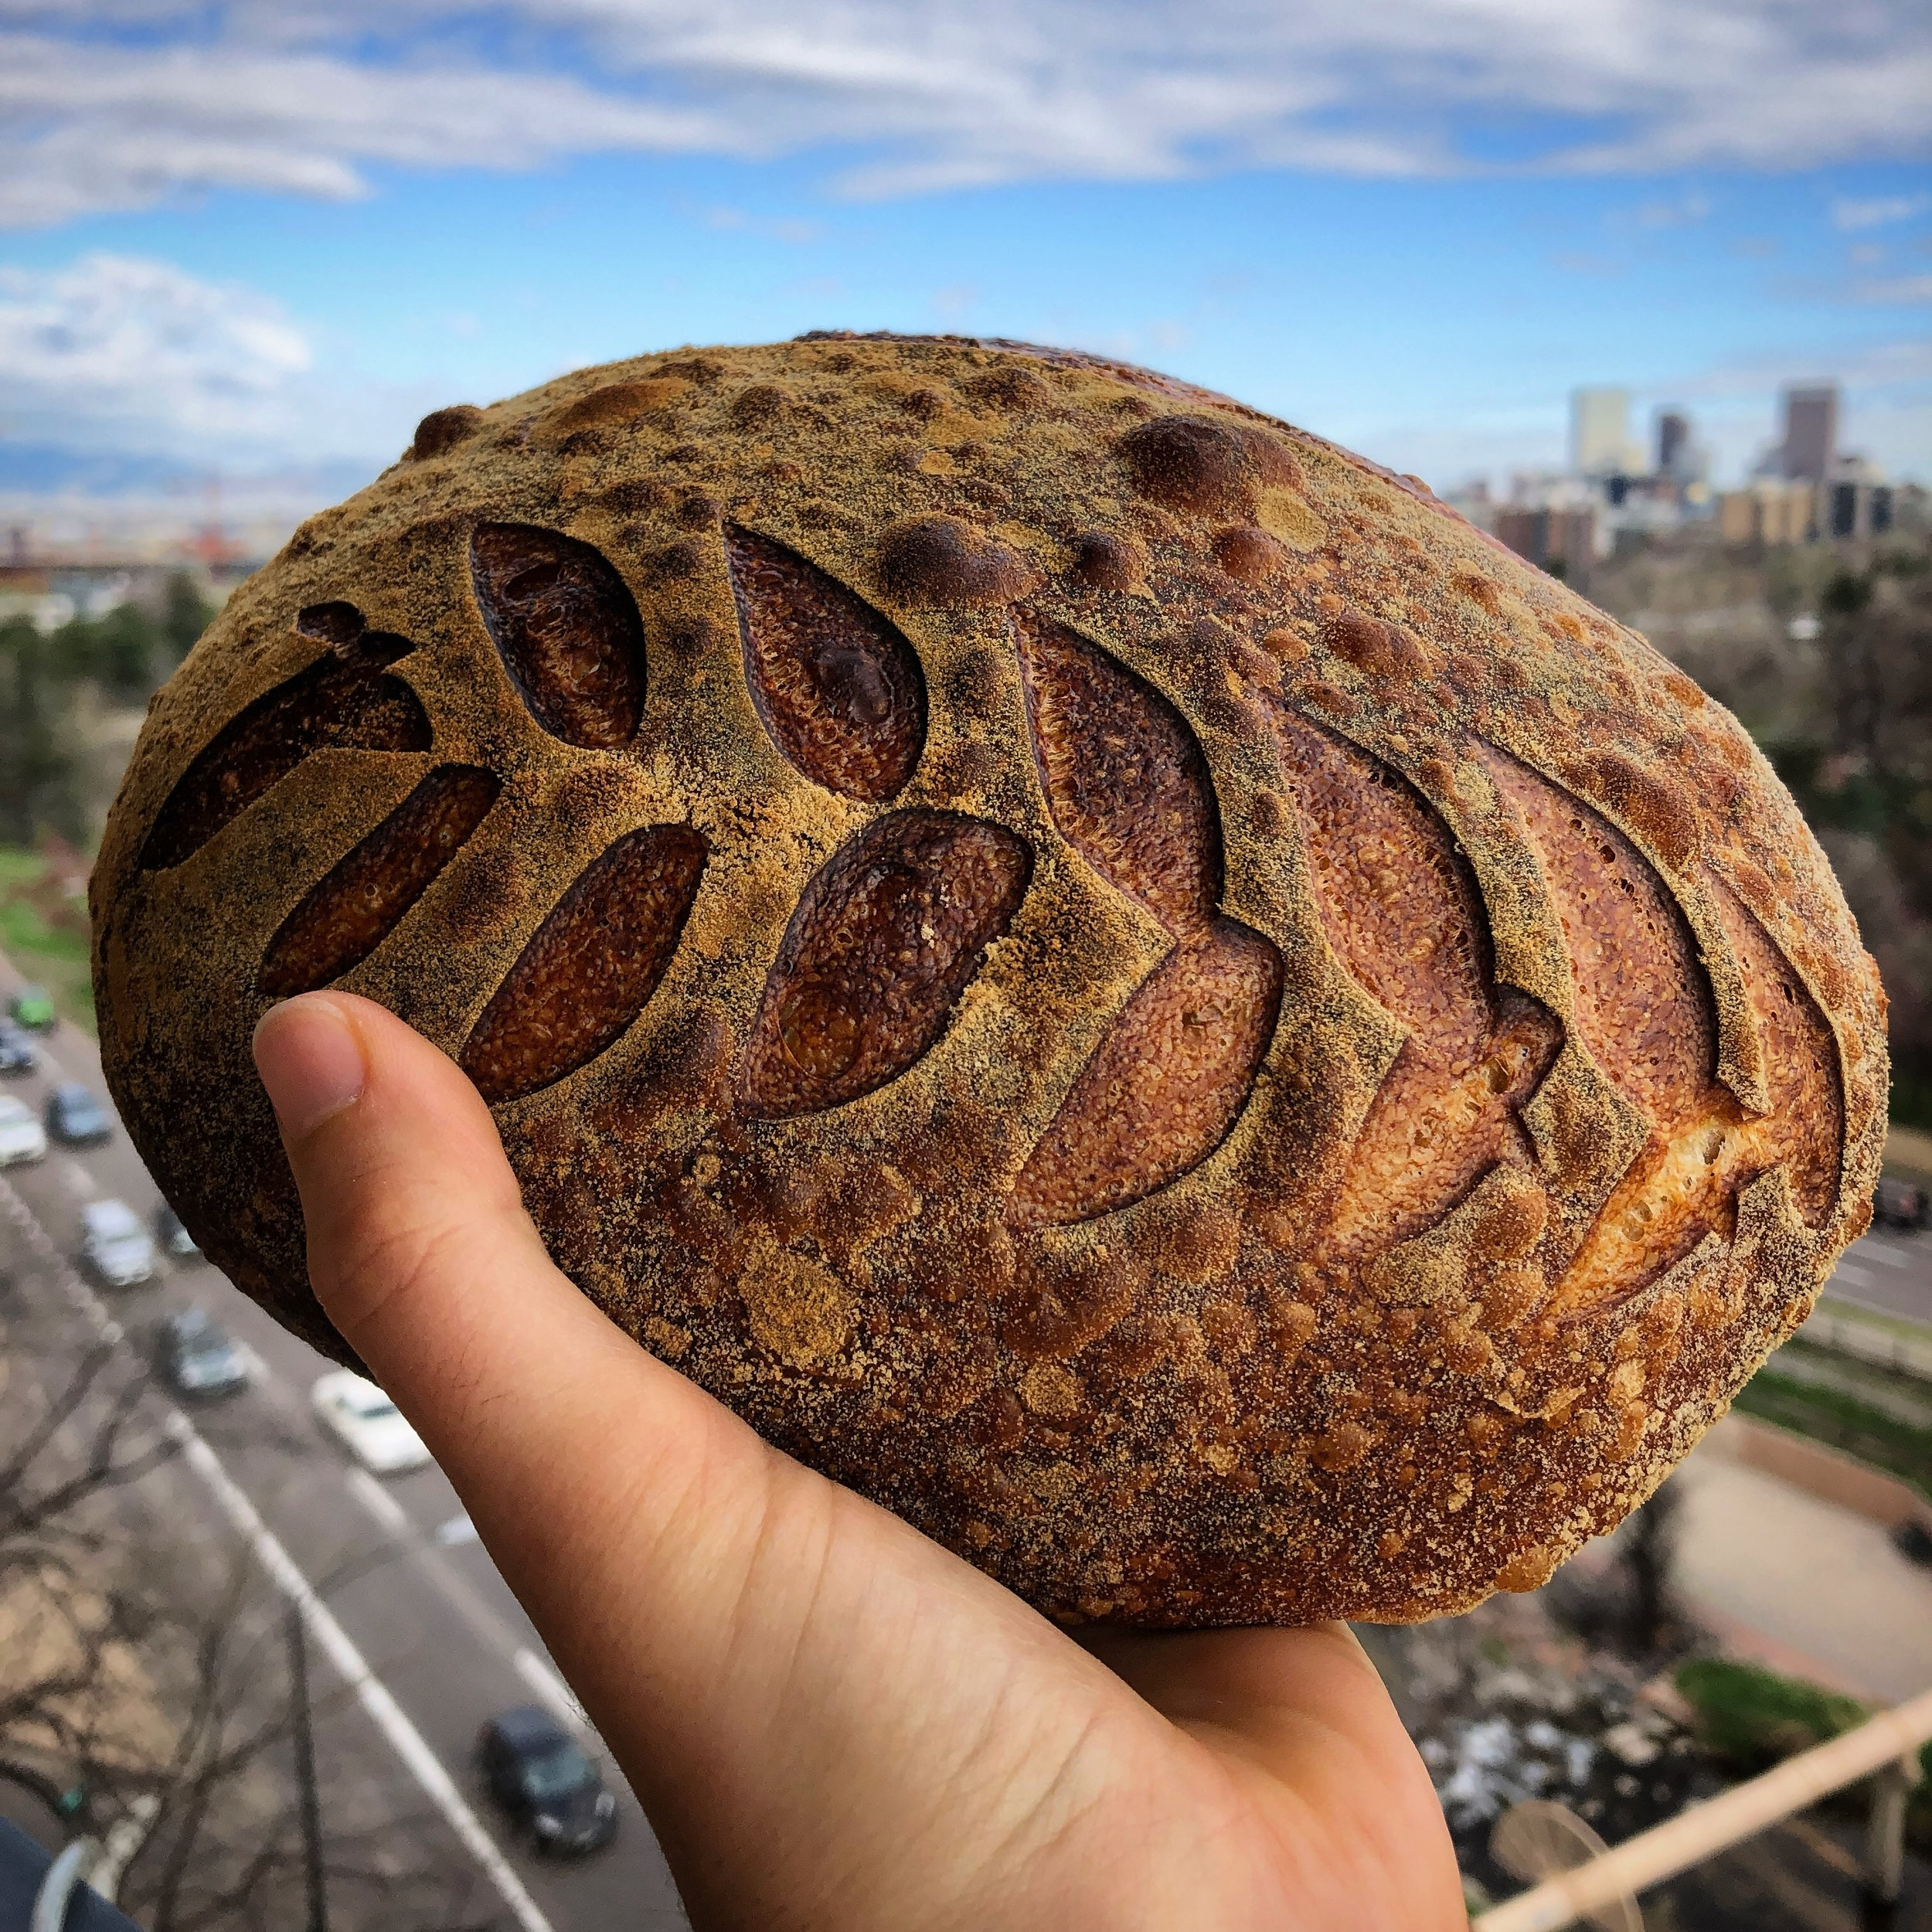 Not in Denver? - Subscribe to the Sourdough Digest and become a sourdough baker at home